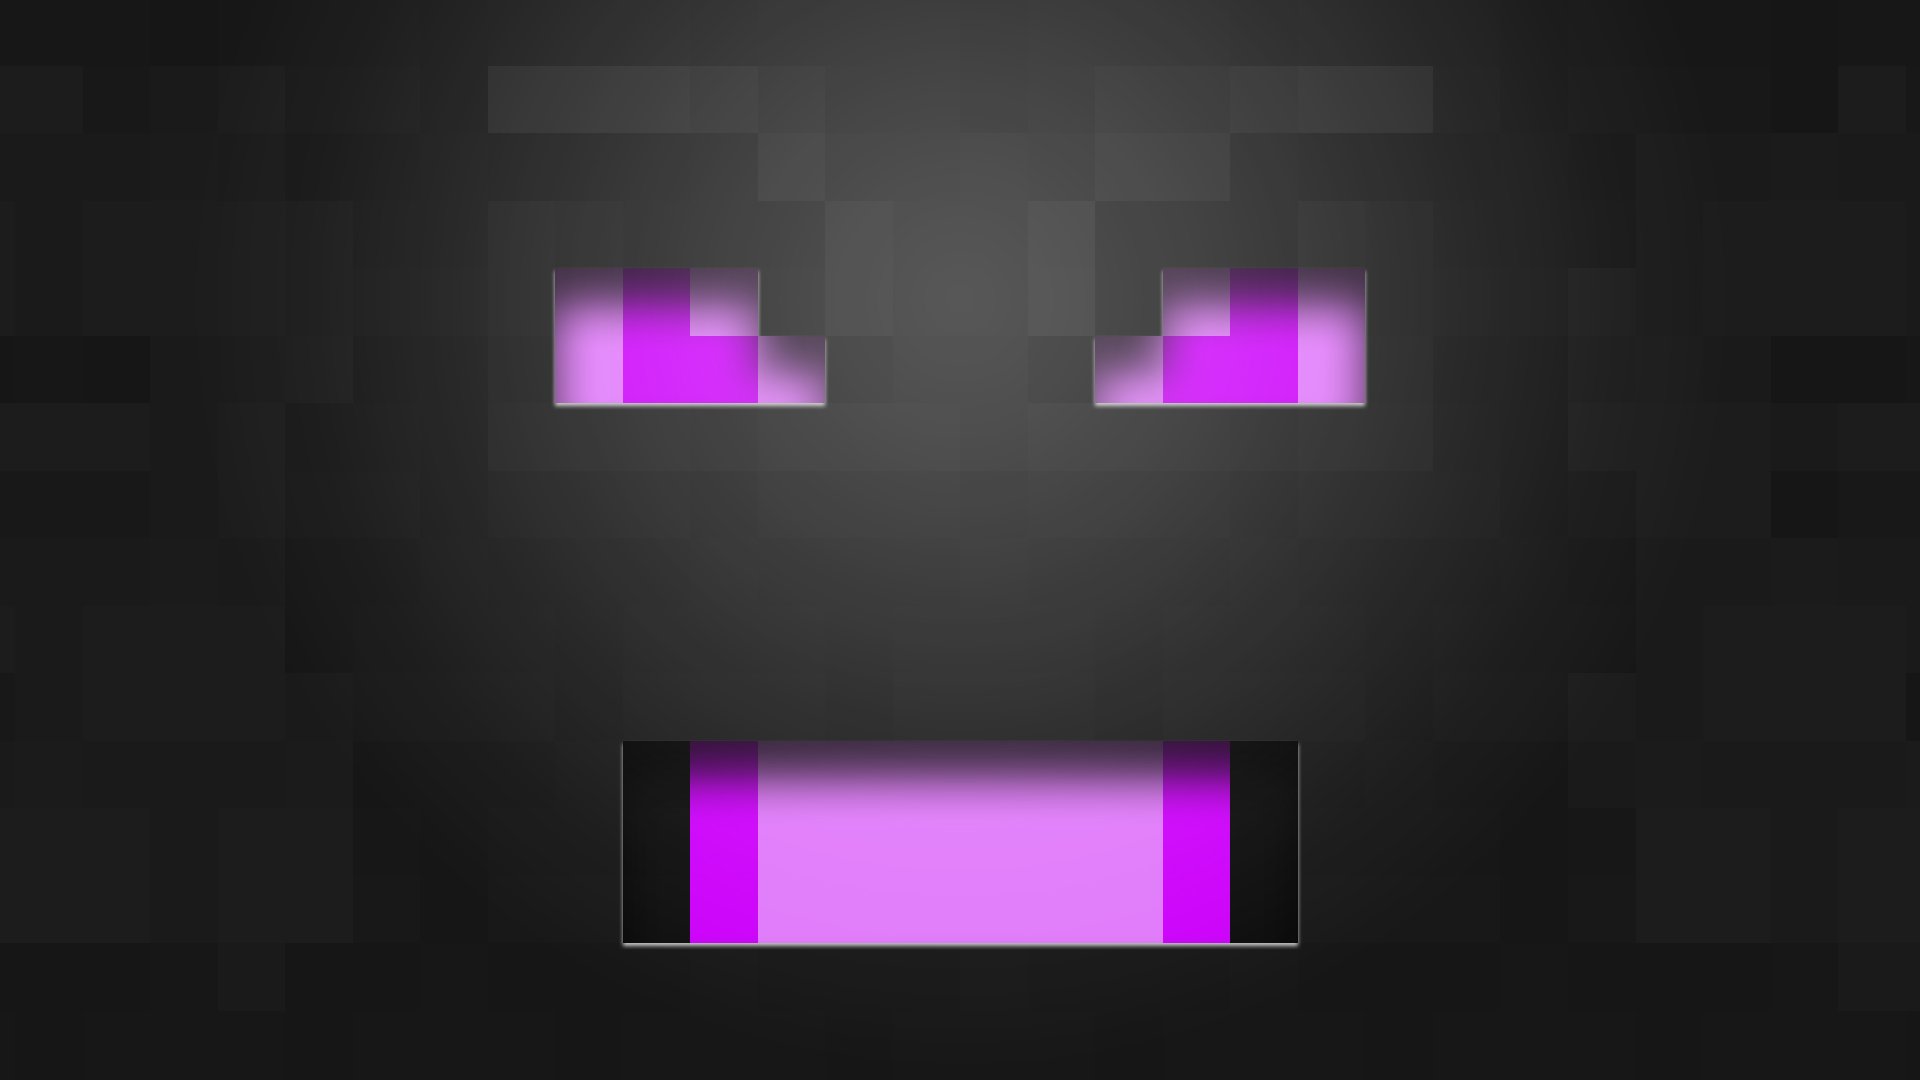 enderman minecraft wallpaper wolf - photo #13